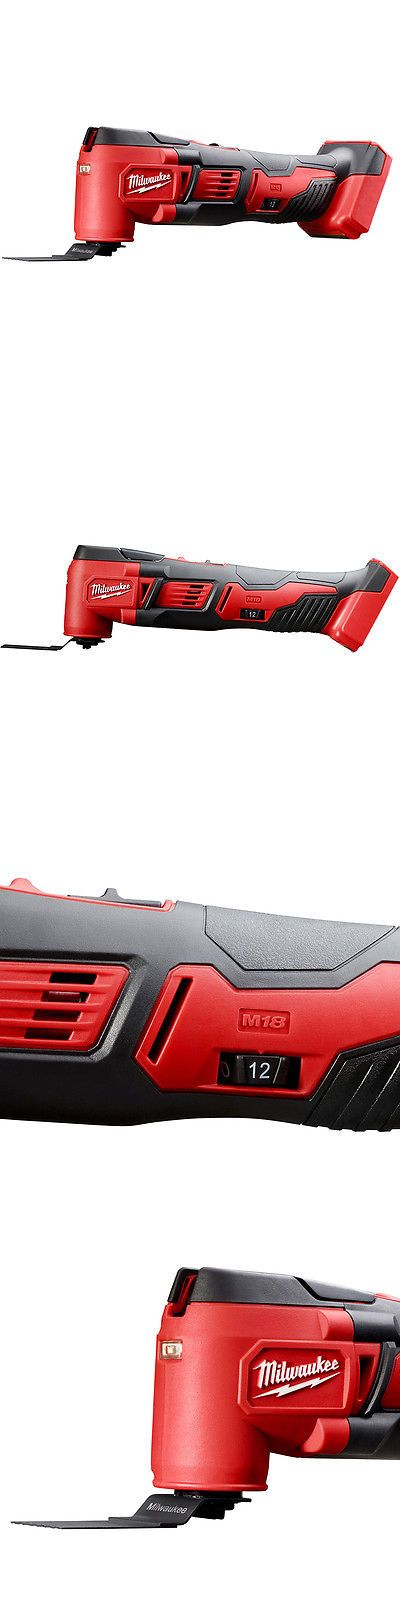 Multi-Tools 46459: Milwaukee 2626-20 M18 18-Volt Multi-Tool W Adapter -> BUY IT NOW ONLY: $119 on eBay!